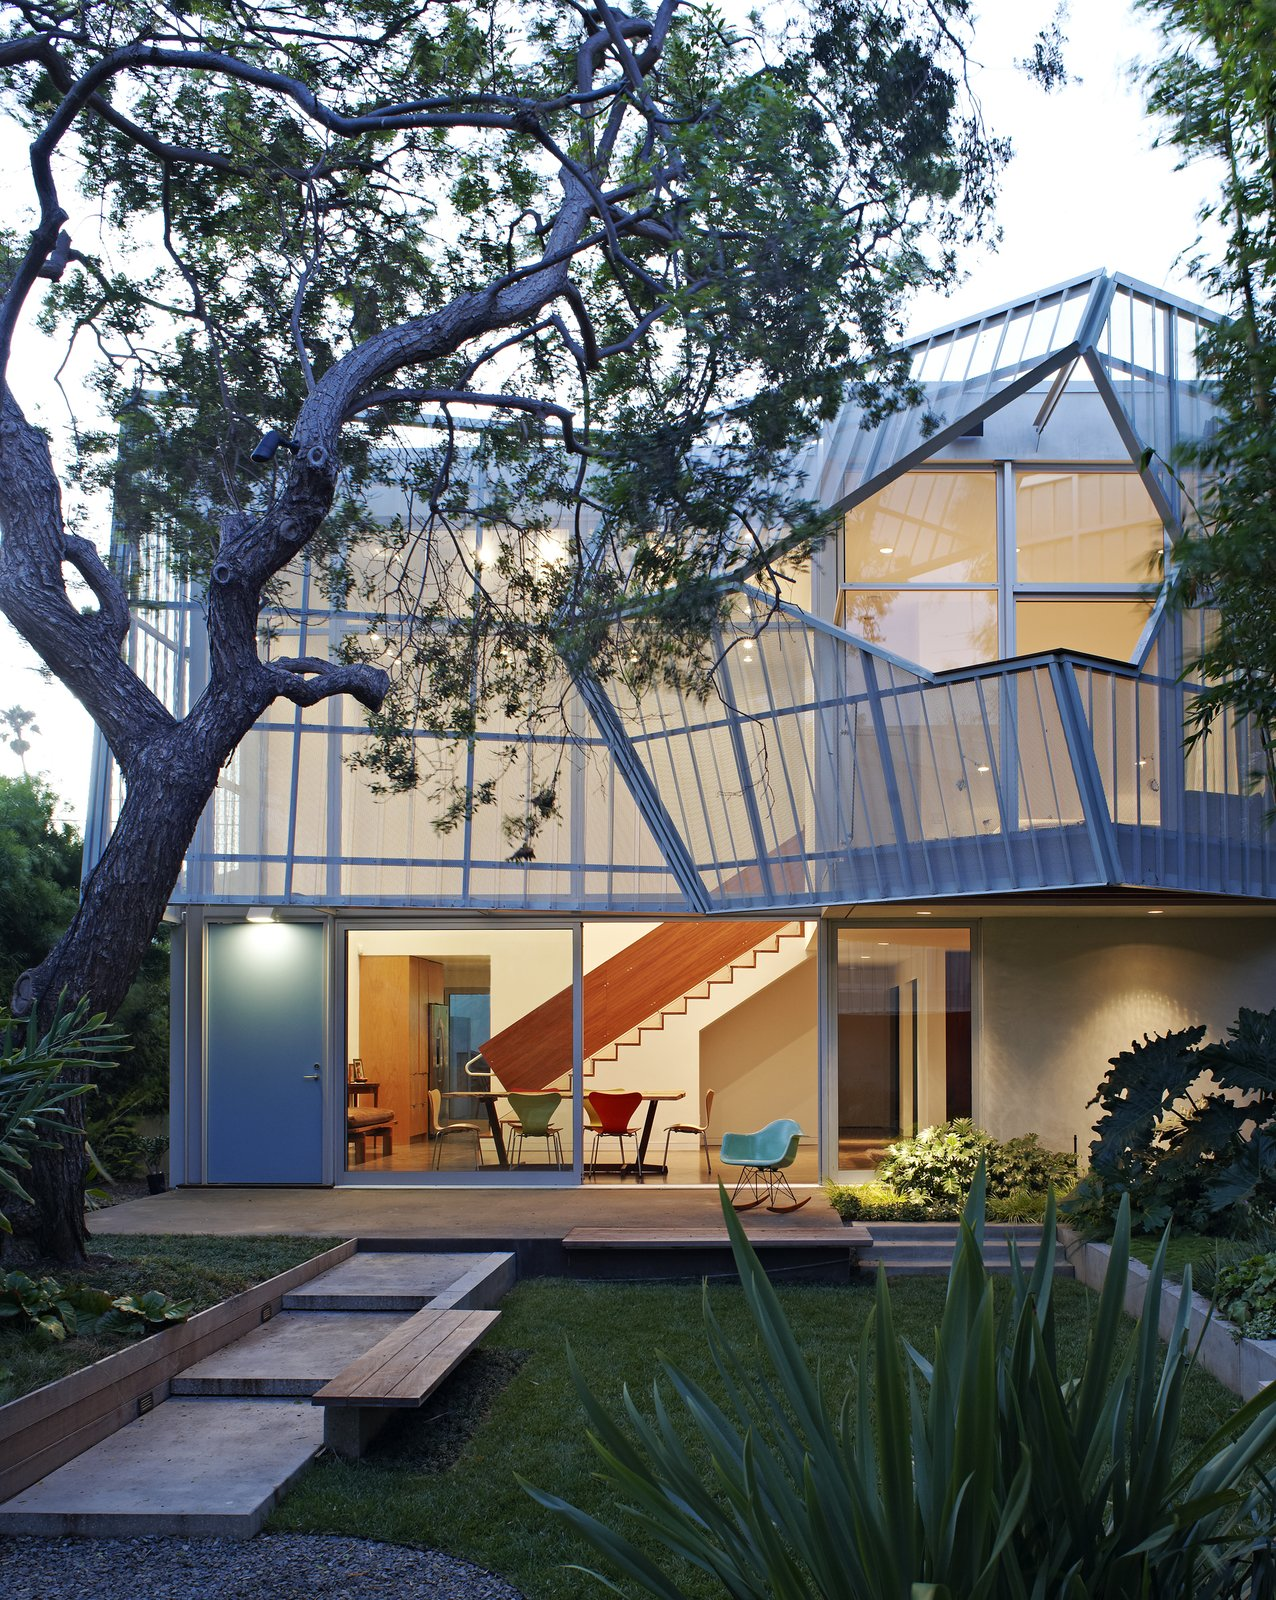 #outside #outdoor #exterior #stairs #landscape #light #tree #aluminum #metal #eco #green #sustainable #Venice #California #KevinDalyArchitects  Venice Residence by Kevin Daly Architects